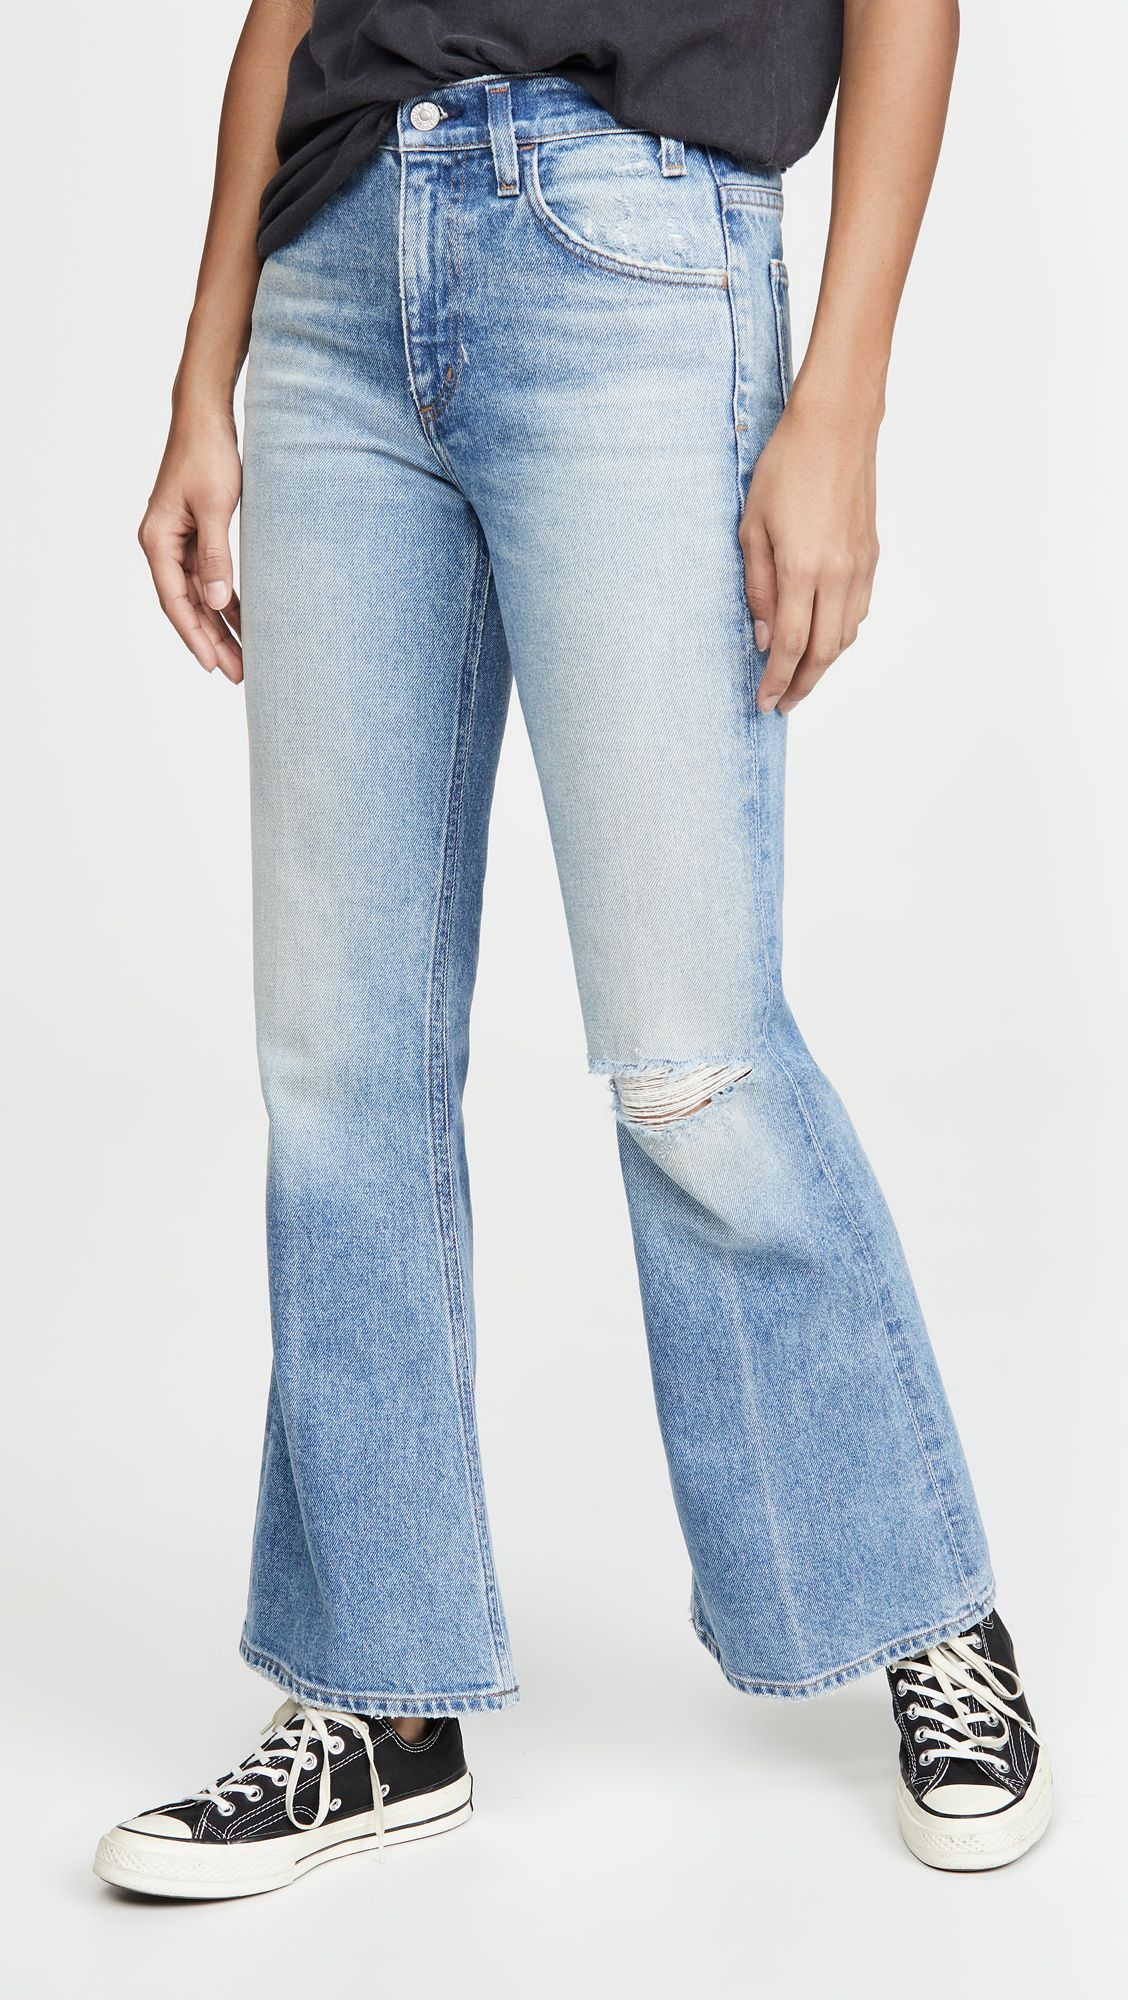 My Friend Asked What to Wear With Flare Jeans, and I Suggested These 6 Basics 21